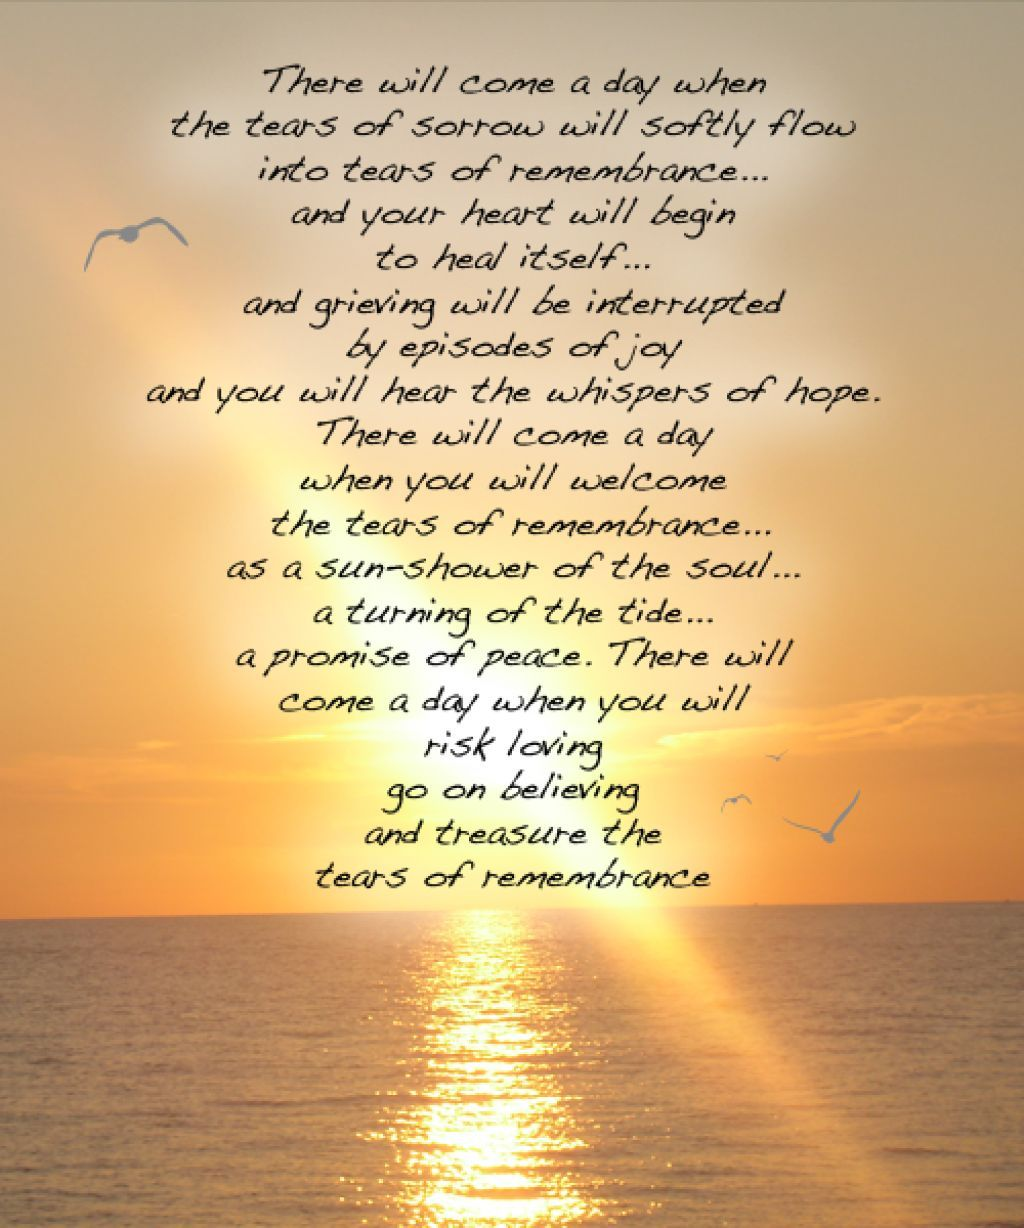 Loss Of A Loved One Quotes Image Result For Quotes Dealing With Loss Of A Loved One  Quotes